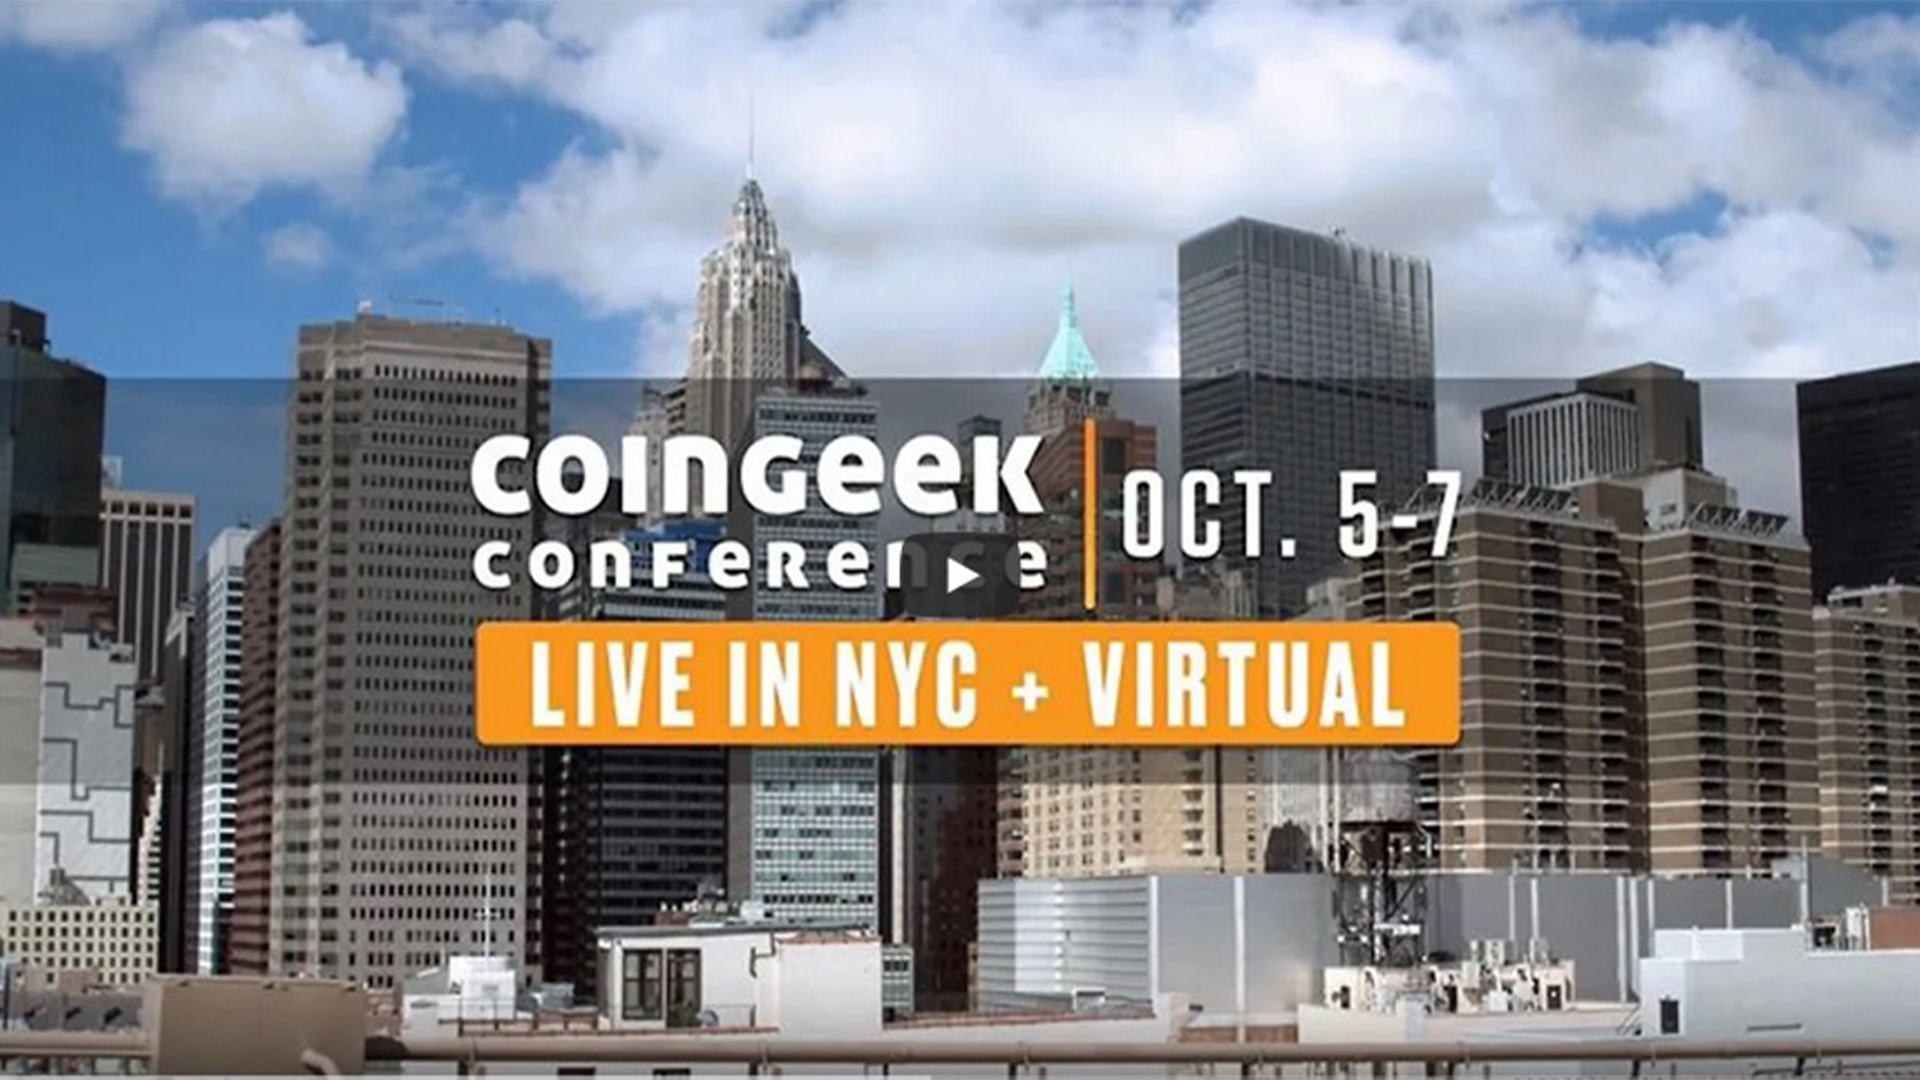 CoinGeek New York will take place at The Sheraton, Times Square (October 5-7)